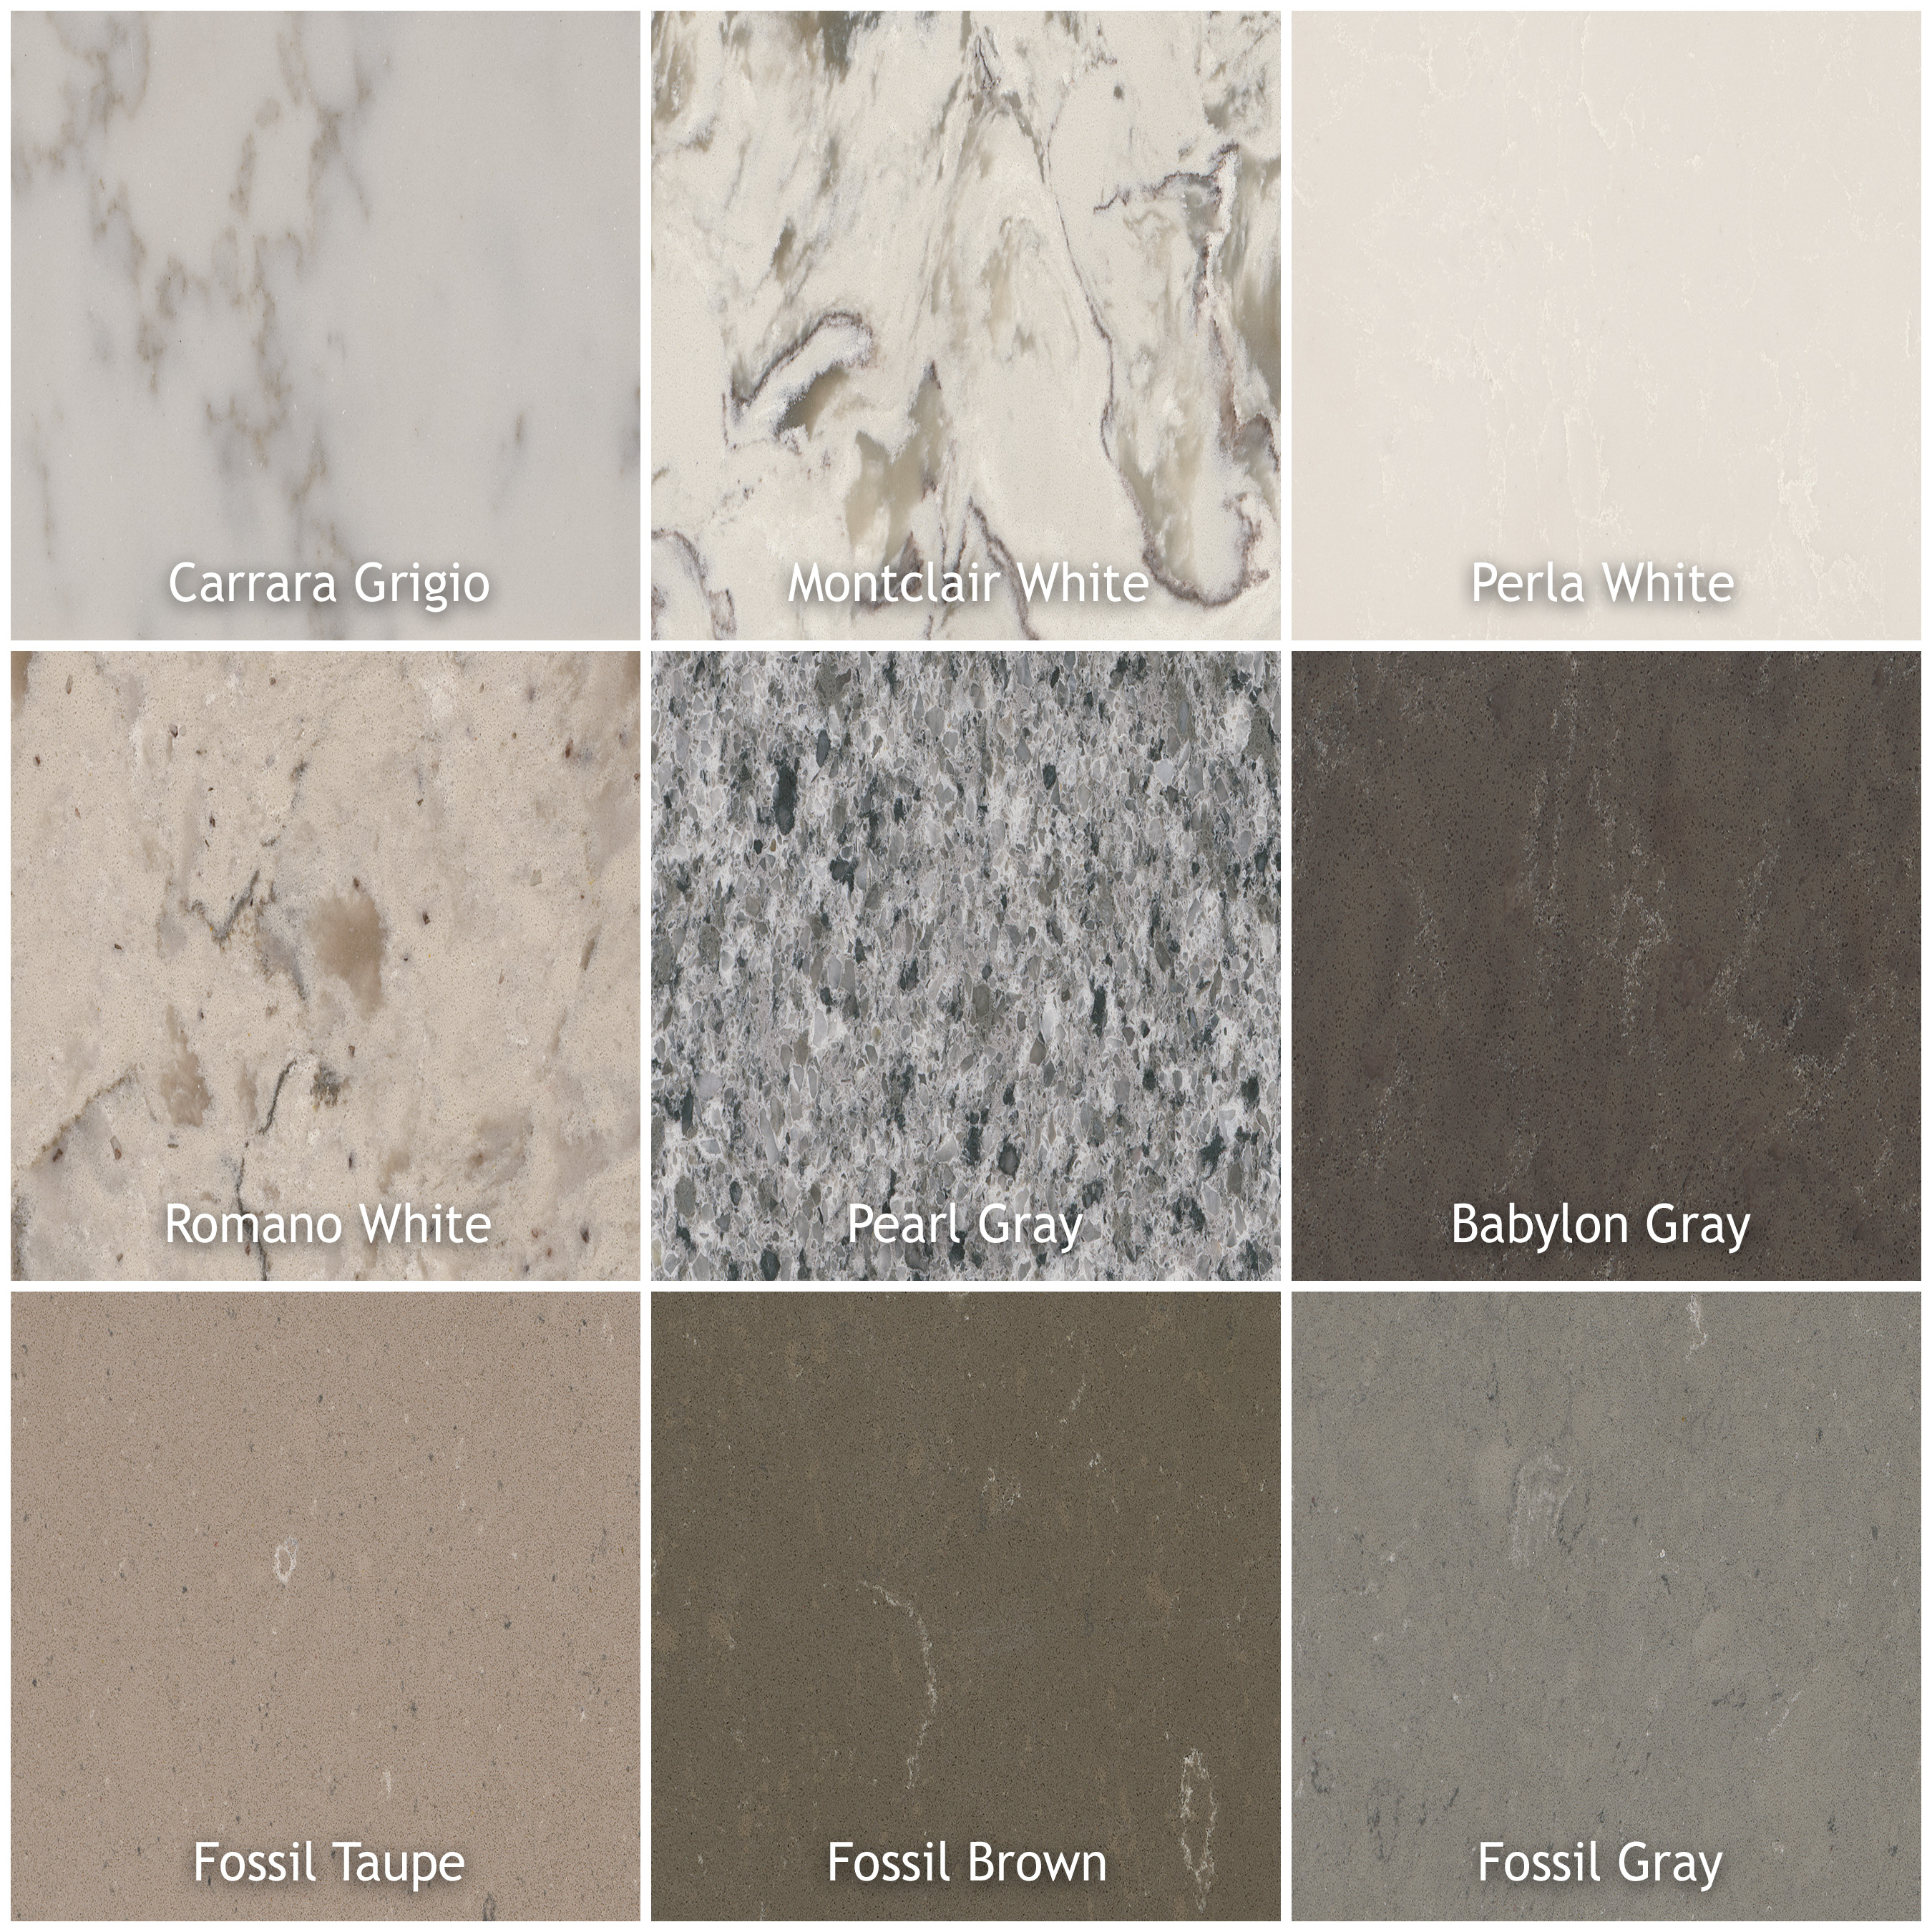 They include: Carrara Grigio, Montclair White, Perla White, Romano  White, Pearl Gray, Babylon Gray, Fossil Taupe, Fossil Brown, and  Fossil Gray.